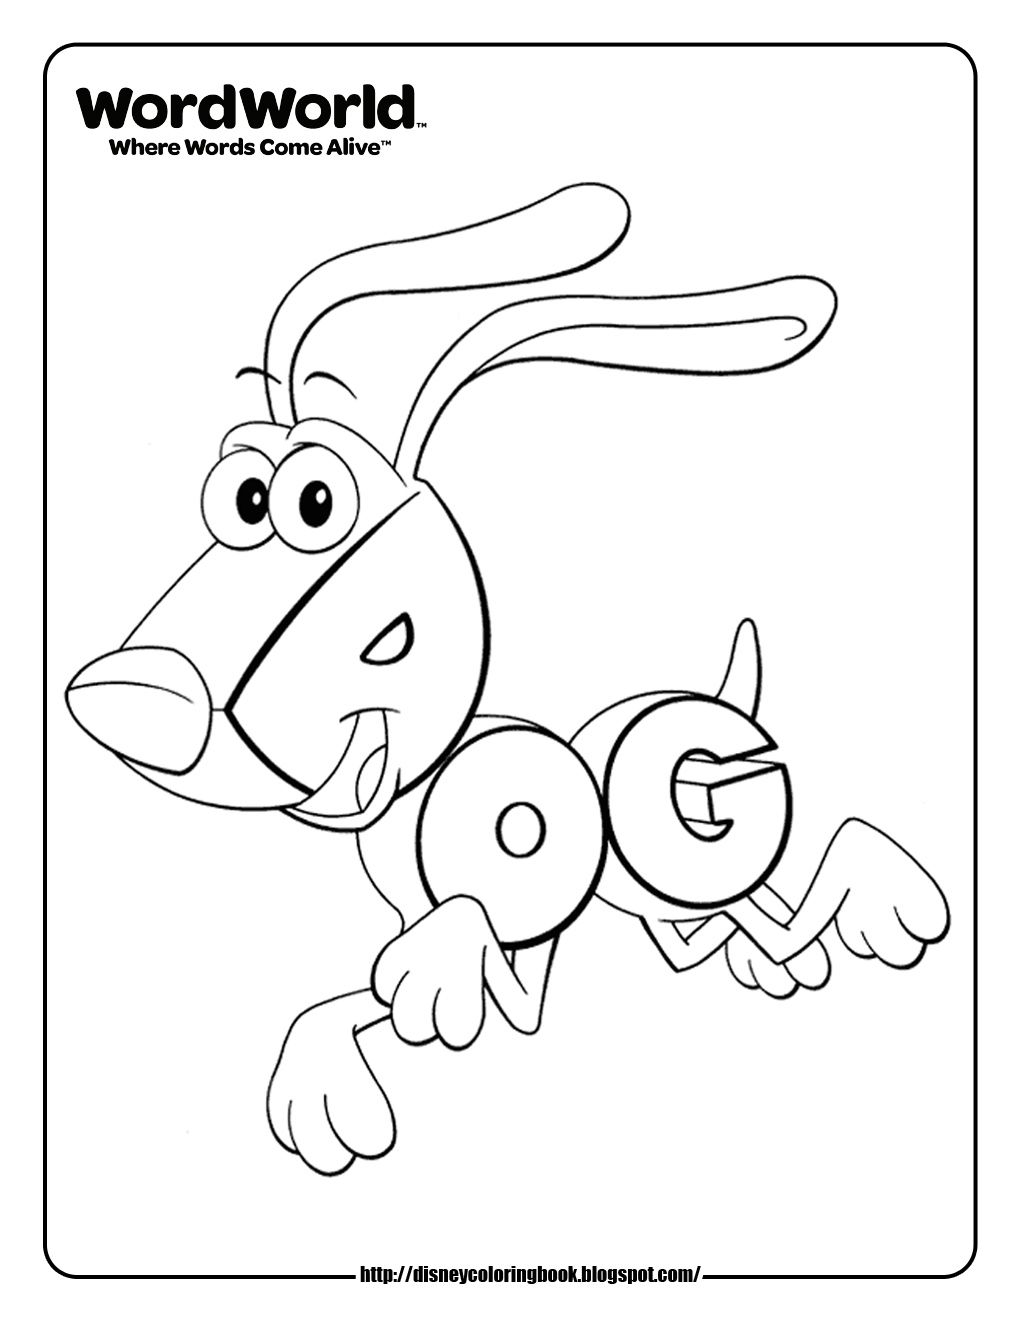 Coloring sheets with words - Word World Dog Coloring Pages I Know A Three Year Old Who Will Love This